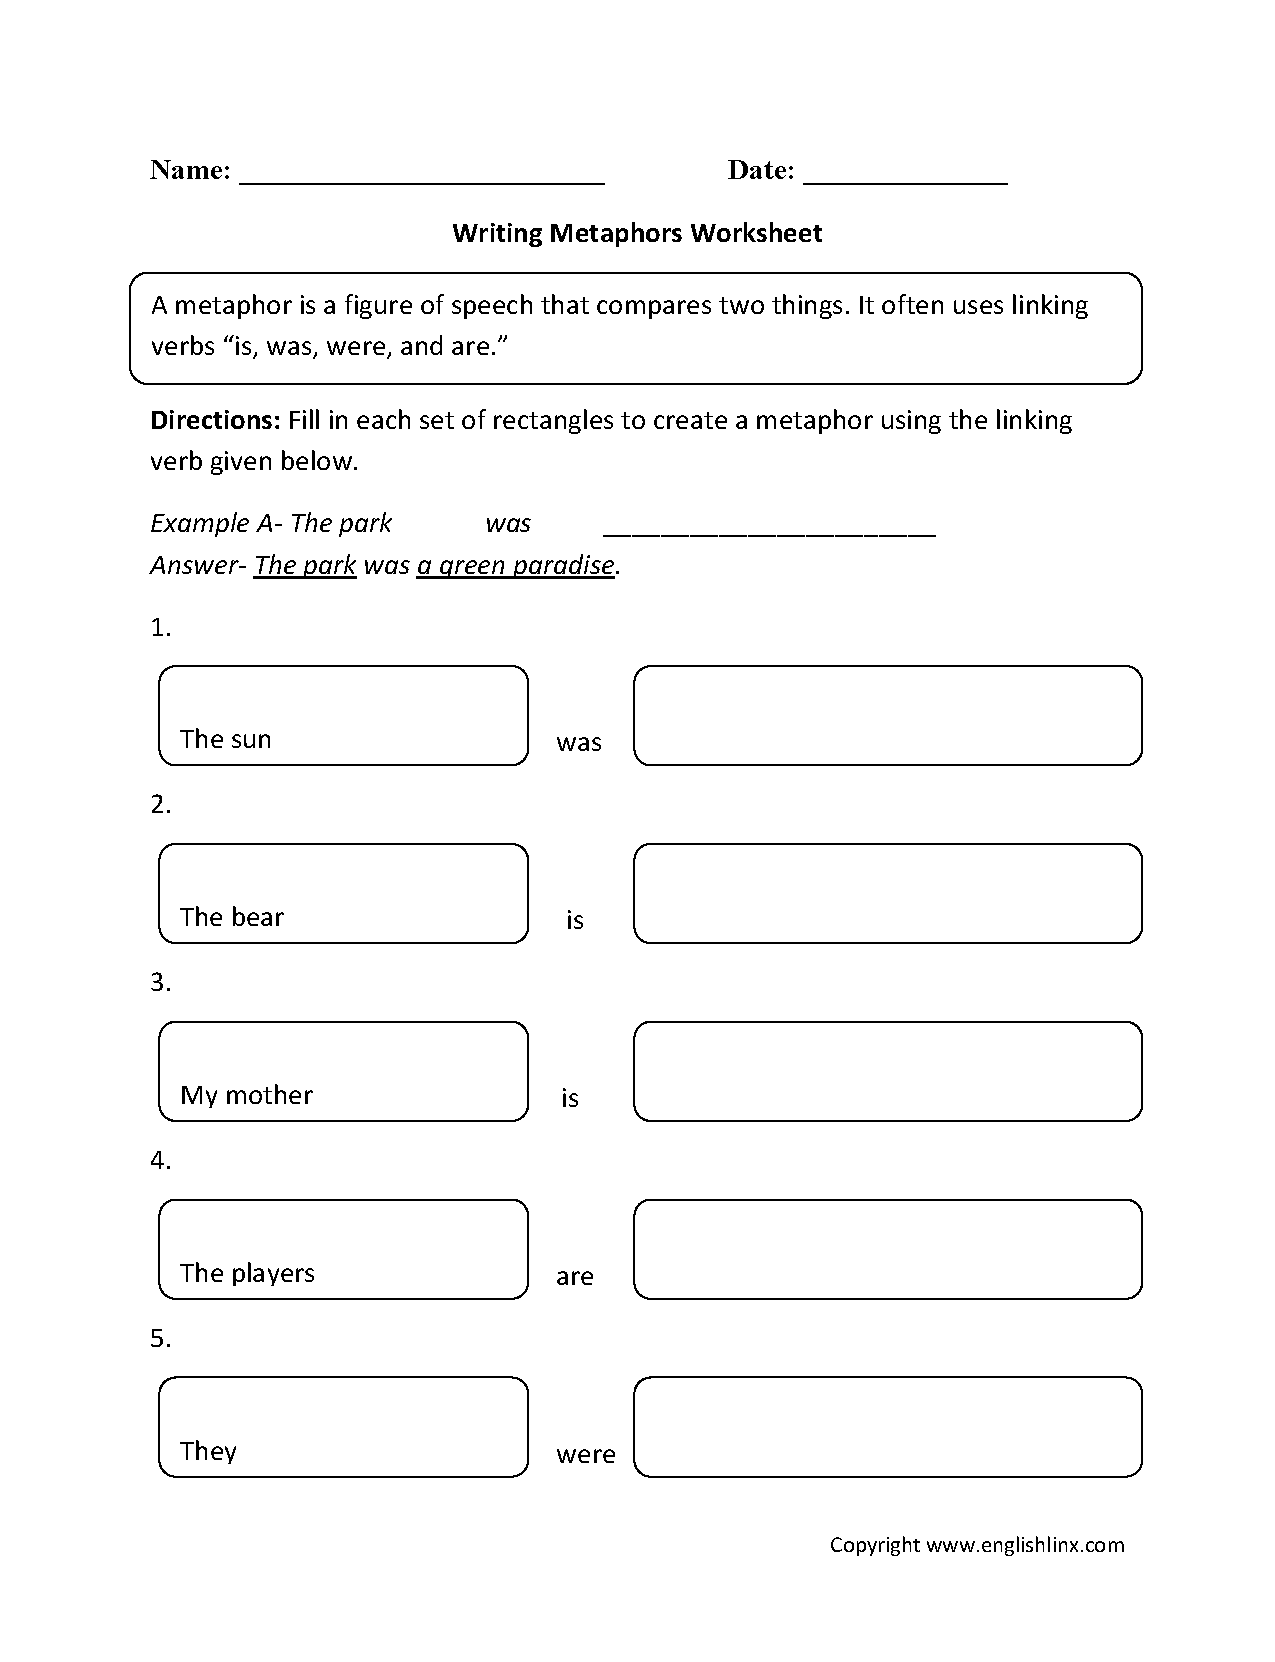 Aldiablosus  Unusual Englishlinxcom  Metaphors Worksheets With Gorgeous Worksheet With Amazing Us Geography Worksheet Also Ks French Worksheets In Addition Handwriting For Adults Worksheets And Multiplication Grid Worksheet As Well As Algebra Inequalities Worksheets Additionally English Worksheets For Year  From Englishlinxcom With Aldiablosus  Gorgeous Englishlinxcom  Metaphors Worksheets With Amazing Worksheet And Unusual Us Geography Worksheet Also Ks French Worksheets In Addition Handwriting For Adults Worksheets From Englishlinxcom